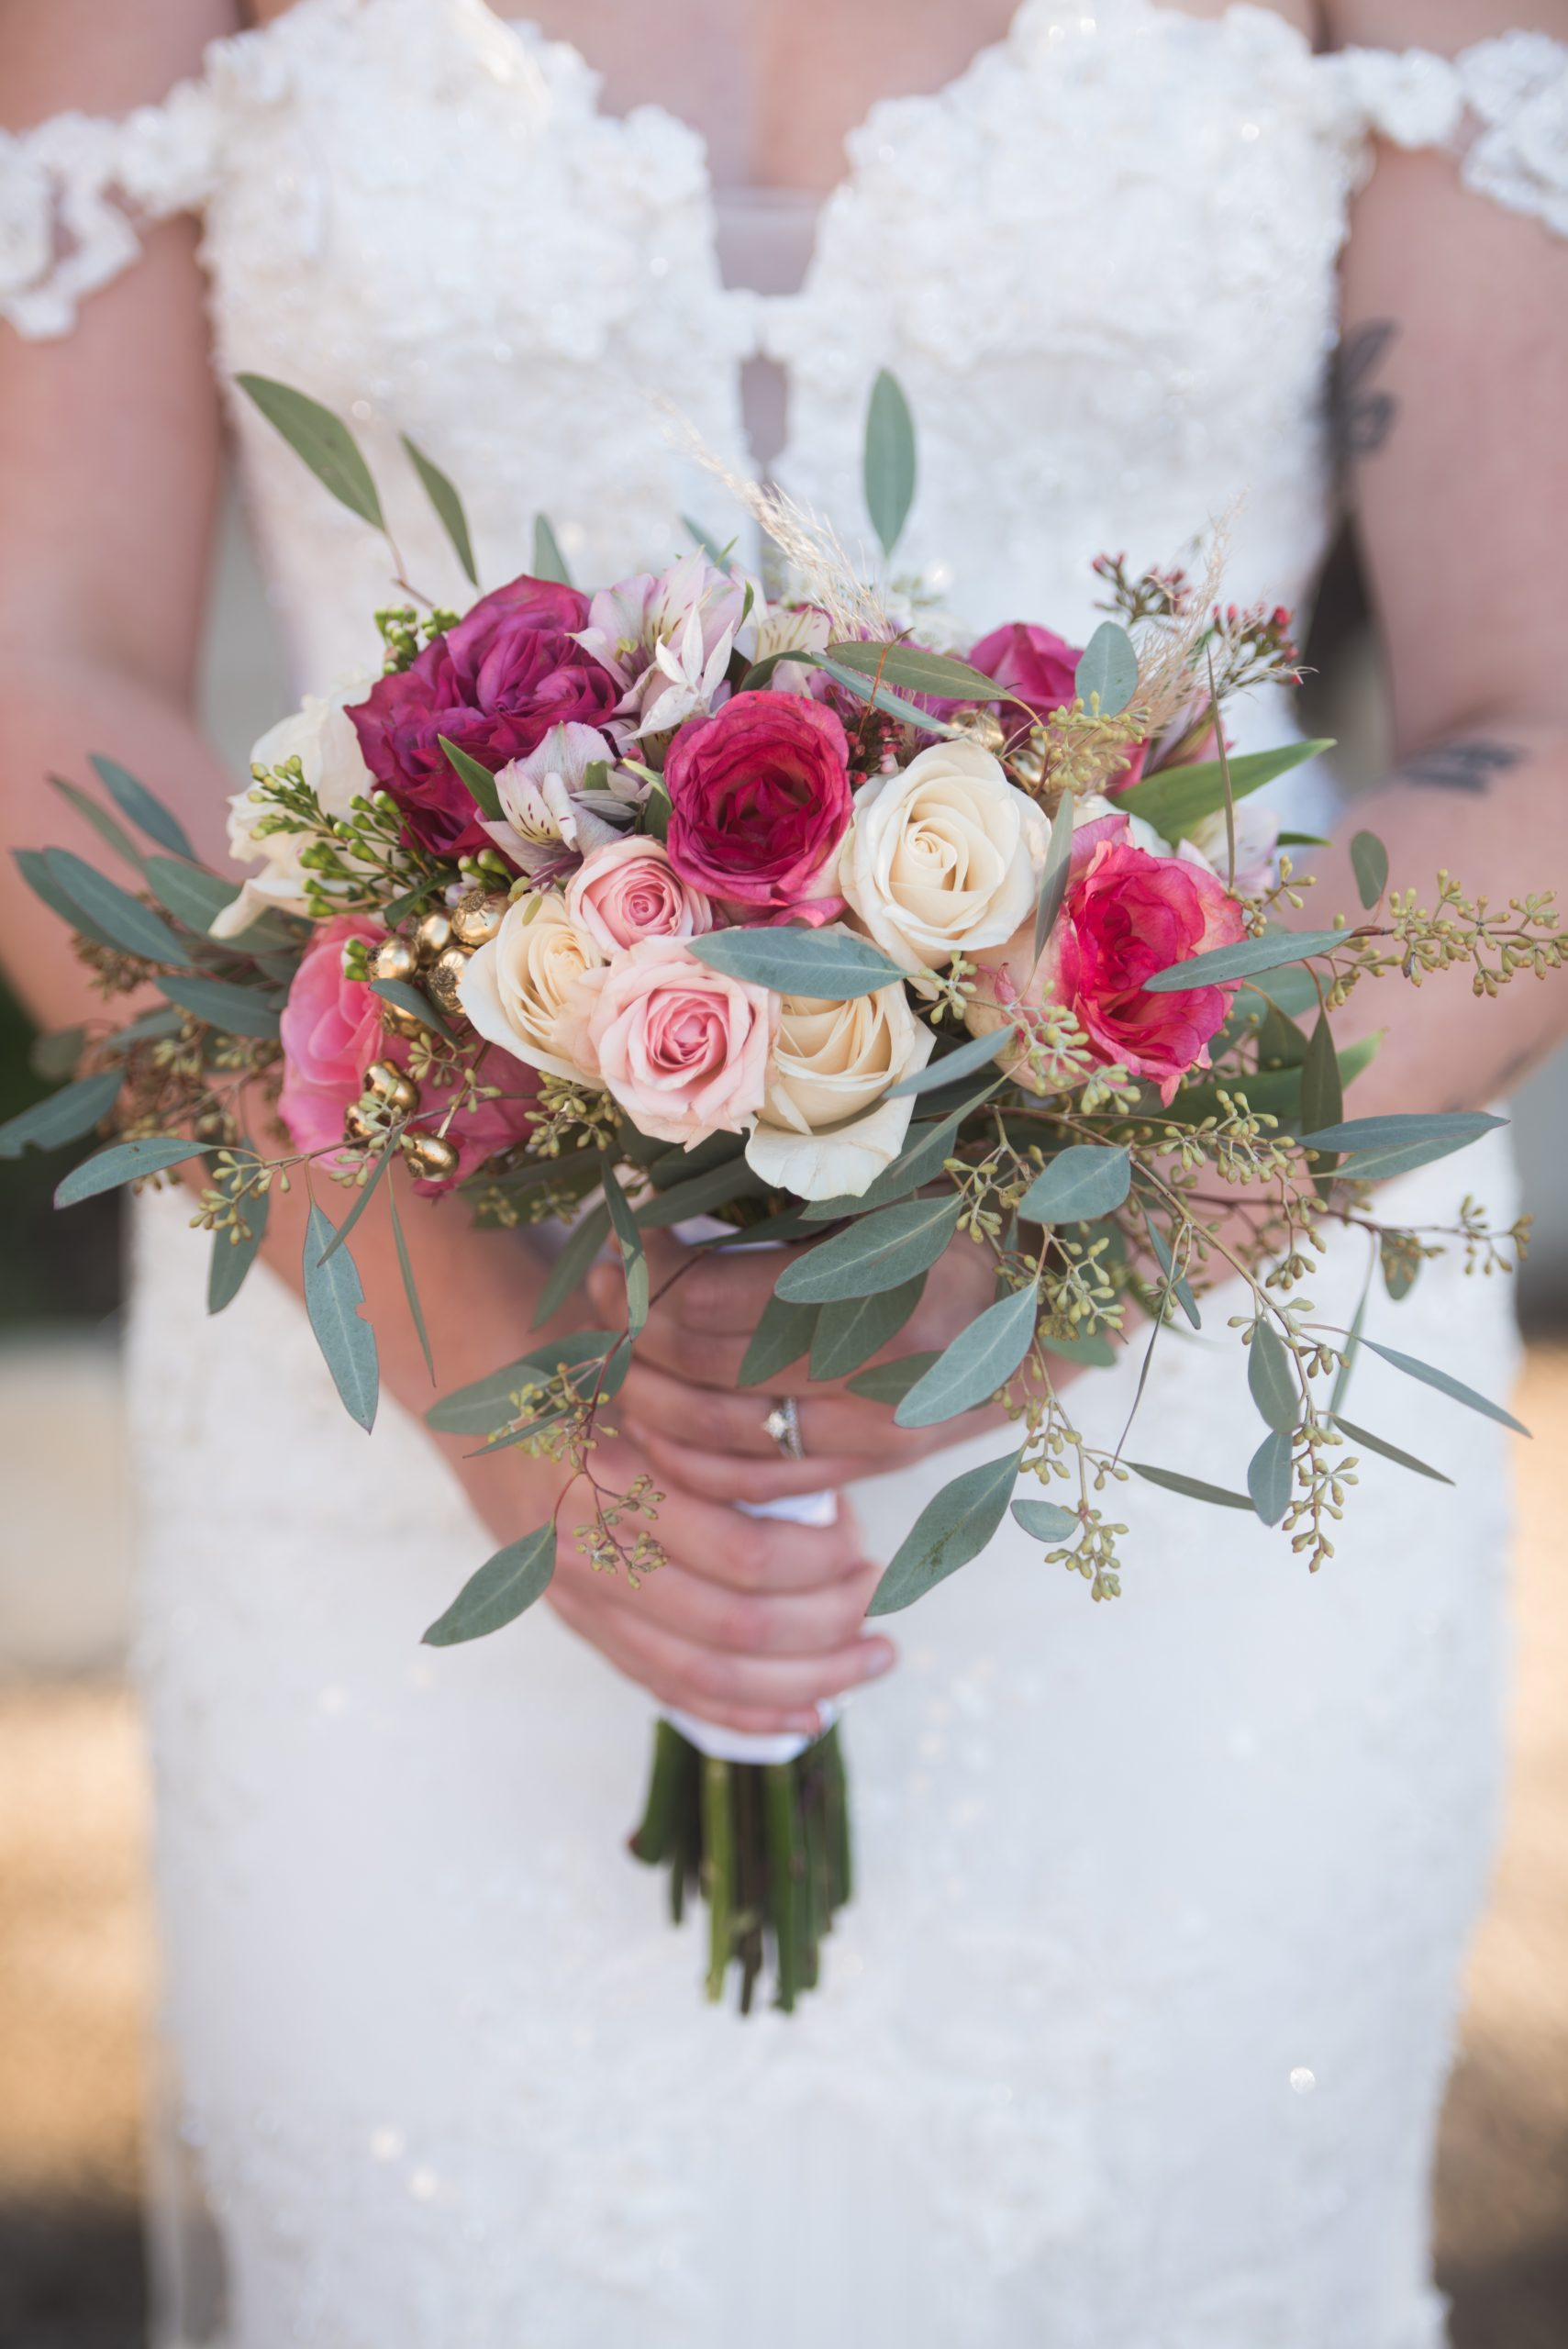 bridal bouquet in front of her wedding dress from bridal connection at Tuscany venue